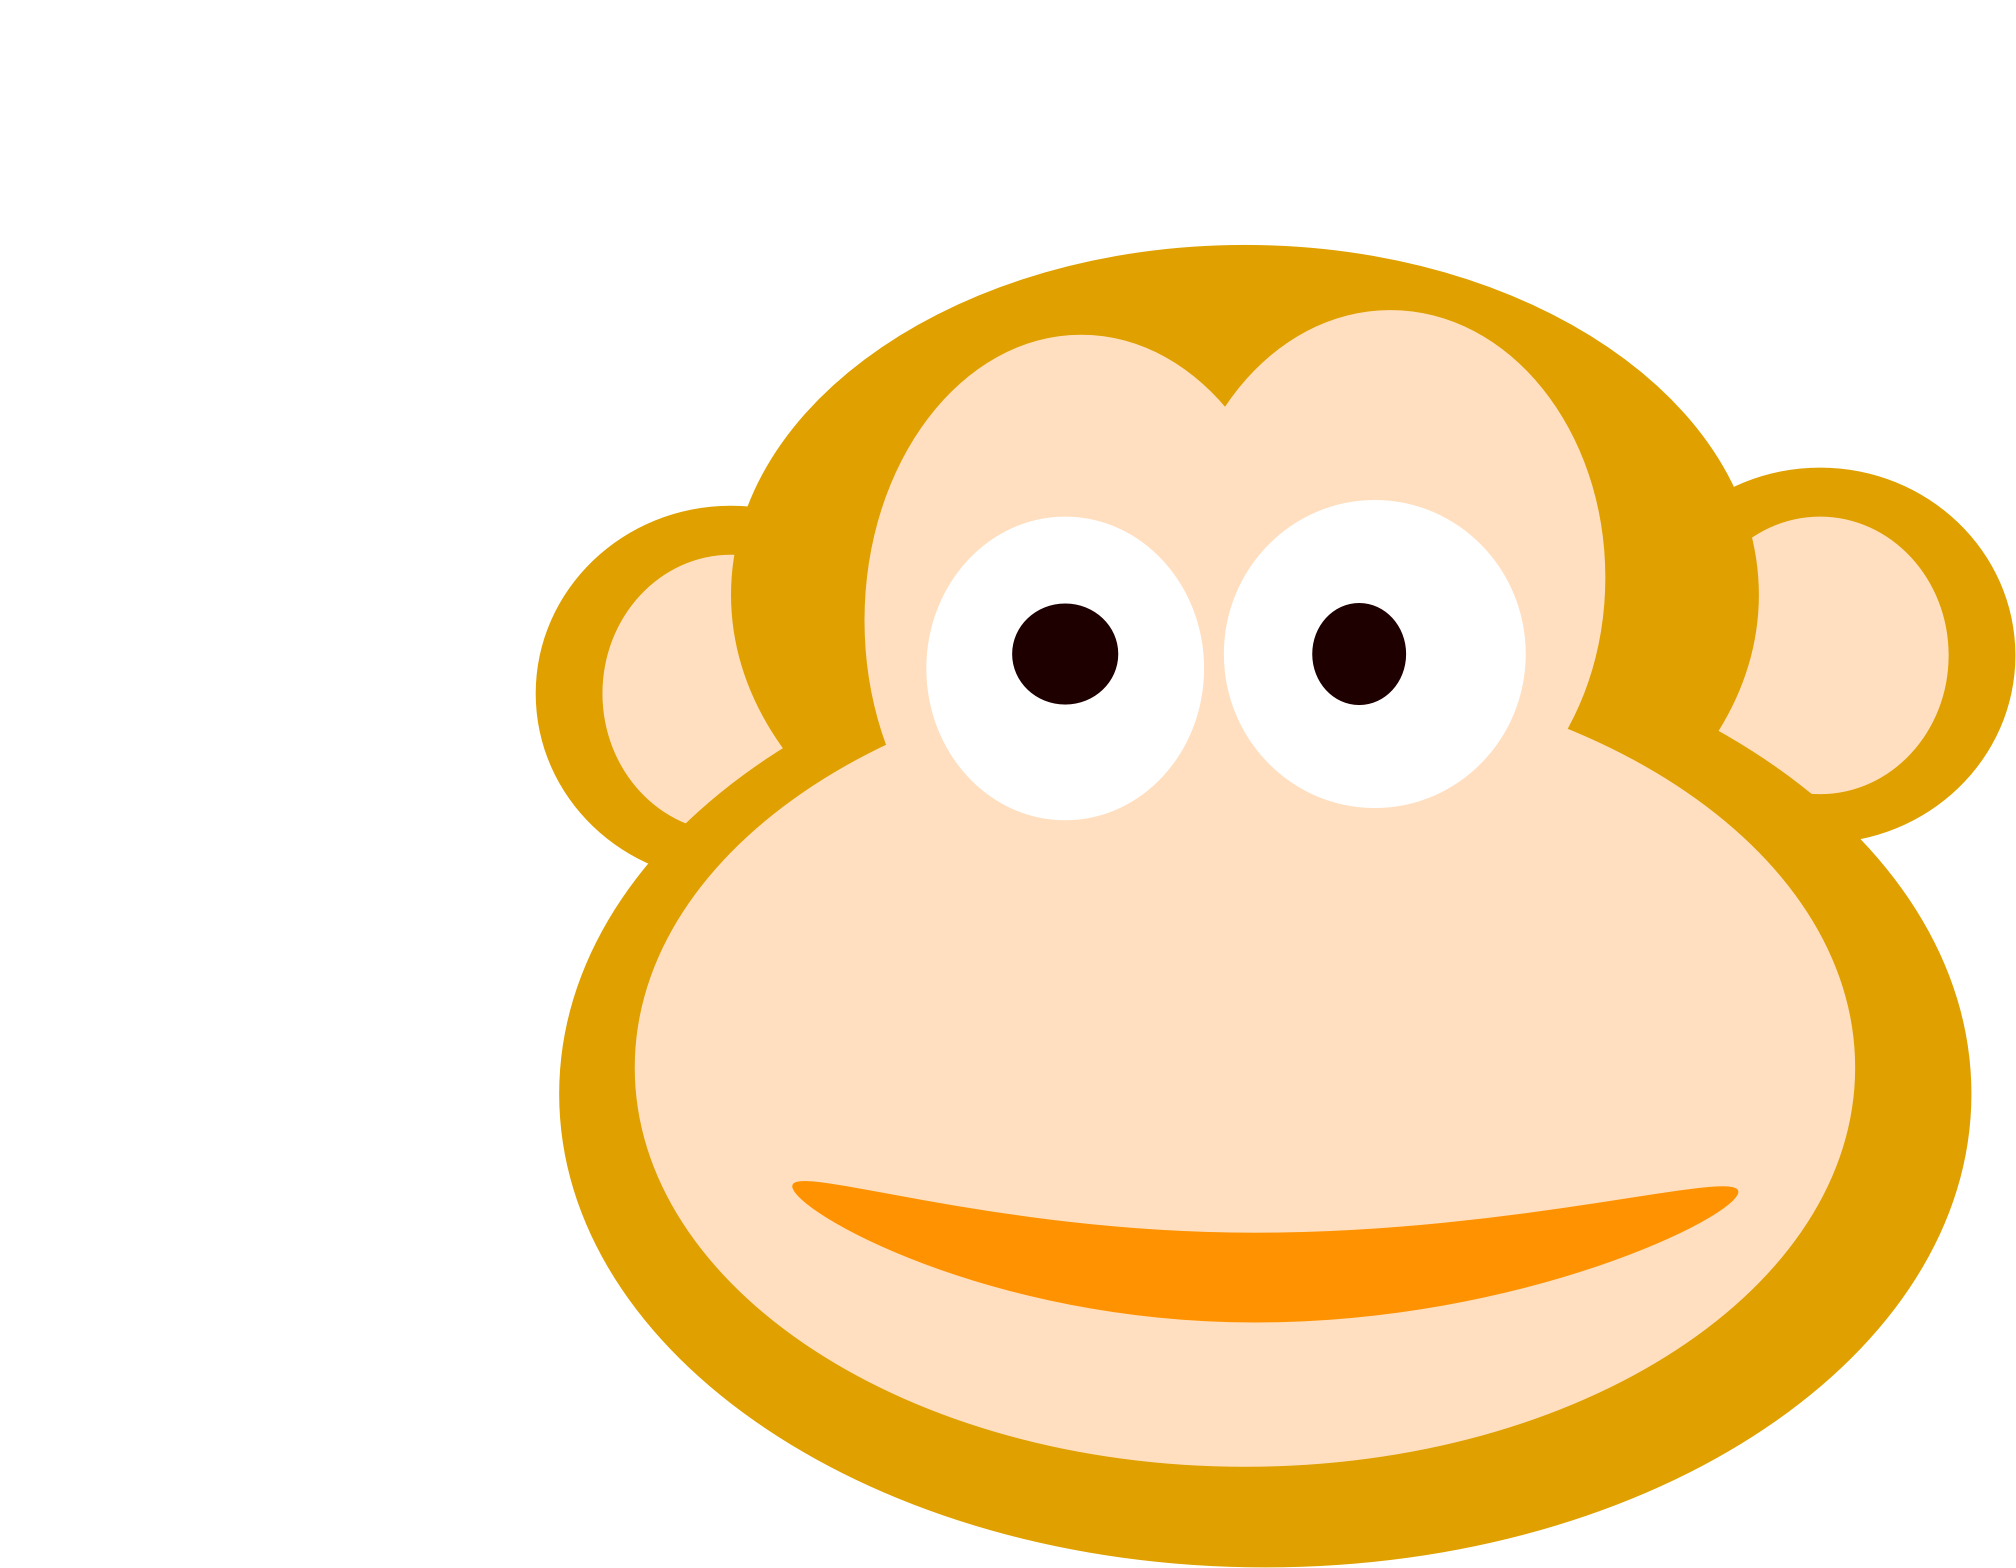 my monkey by weiren.ho